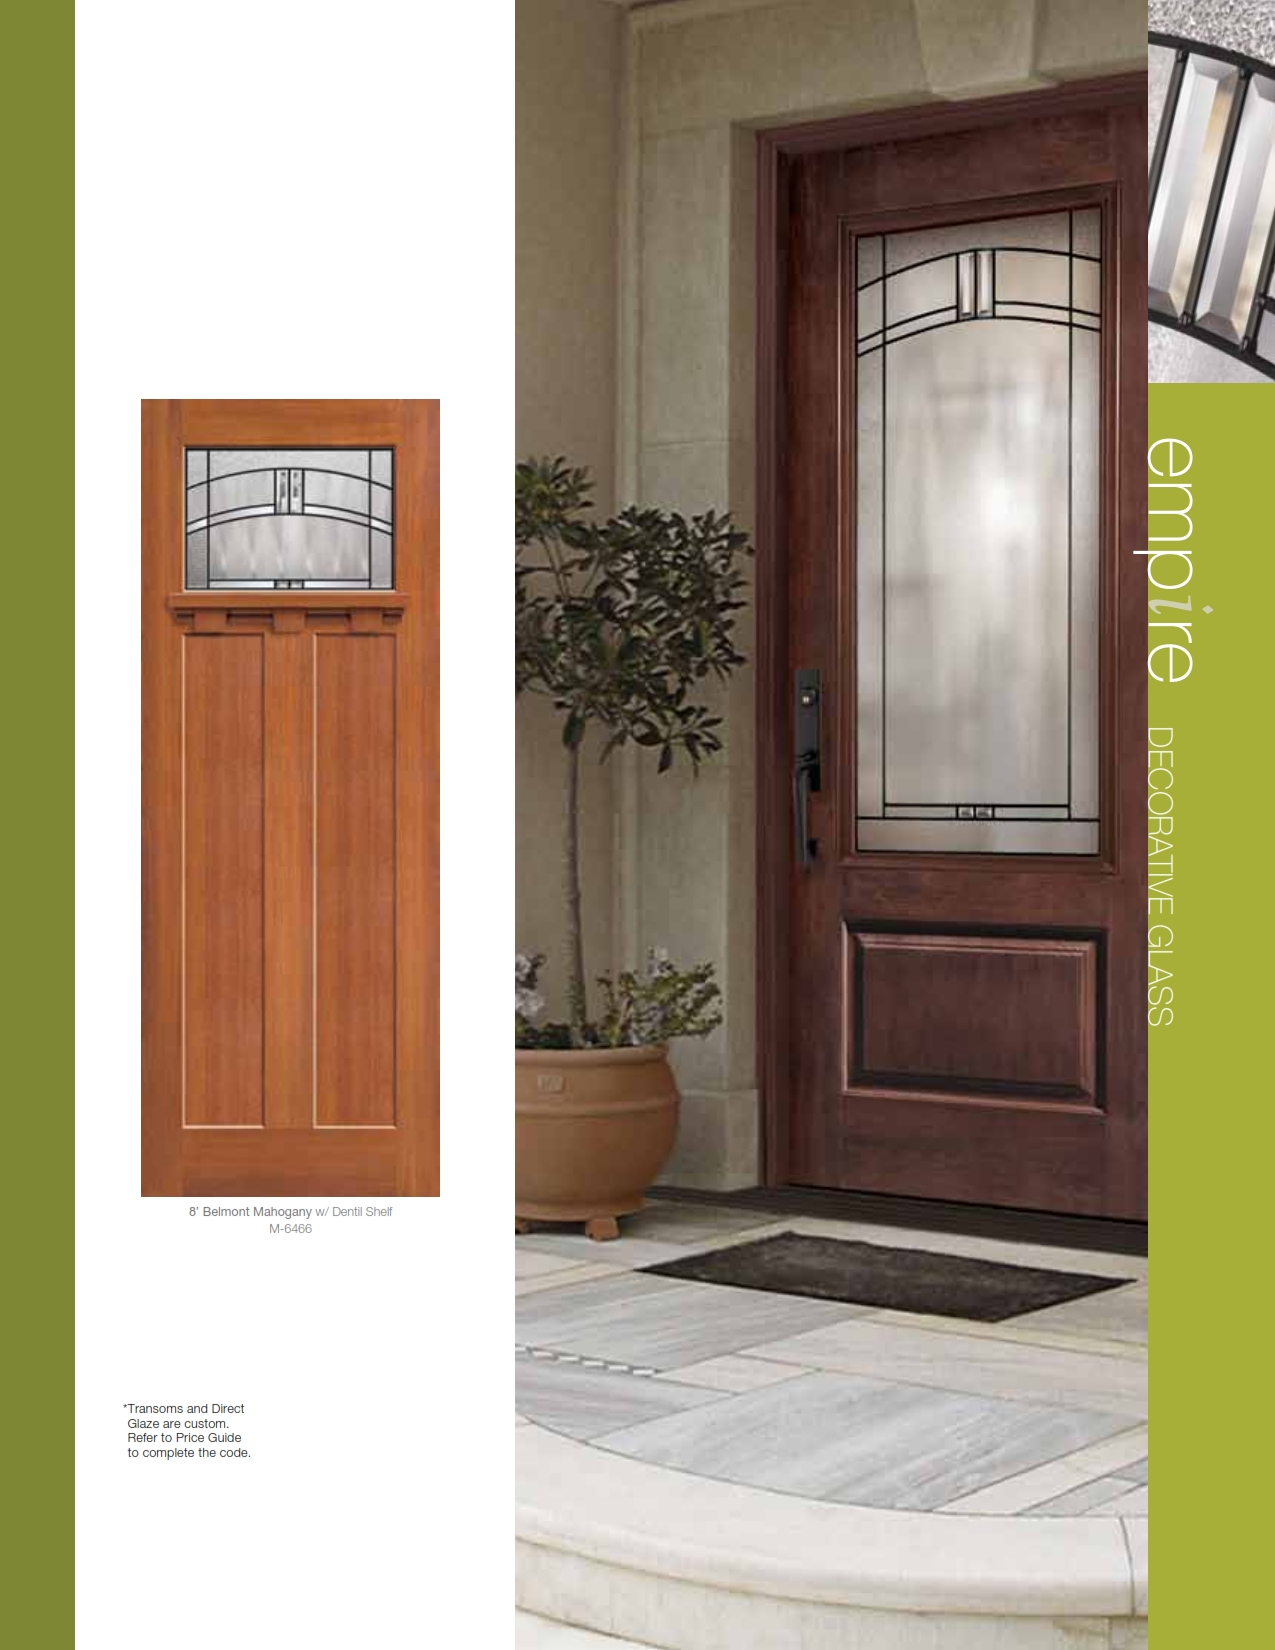 1650 #939A31  Fiberglass Front Door Systems Trutech 031 EuroStar Windows And Doors wallpaper Fiberglass Front Doors 39951275